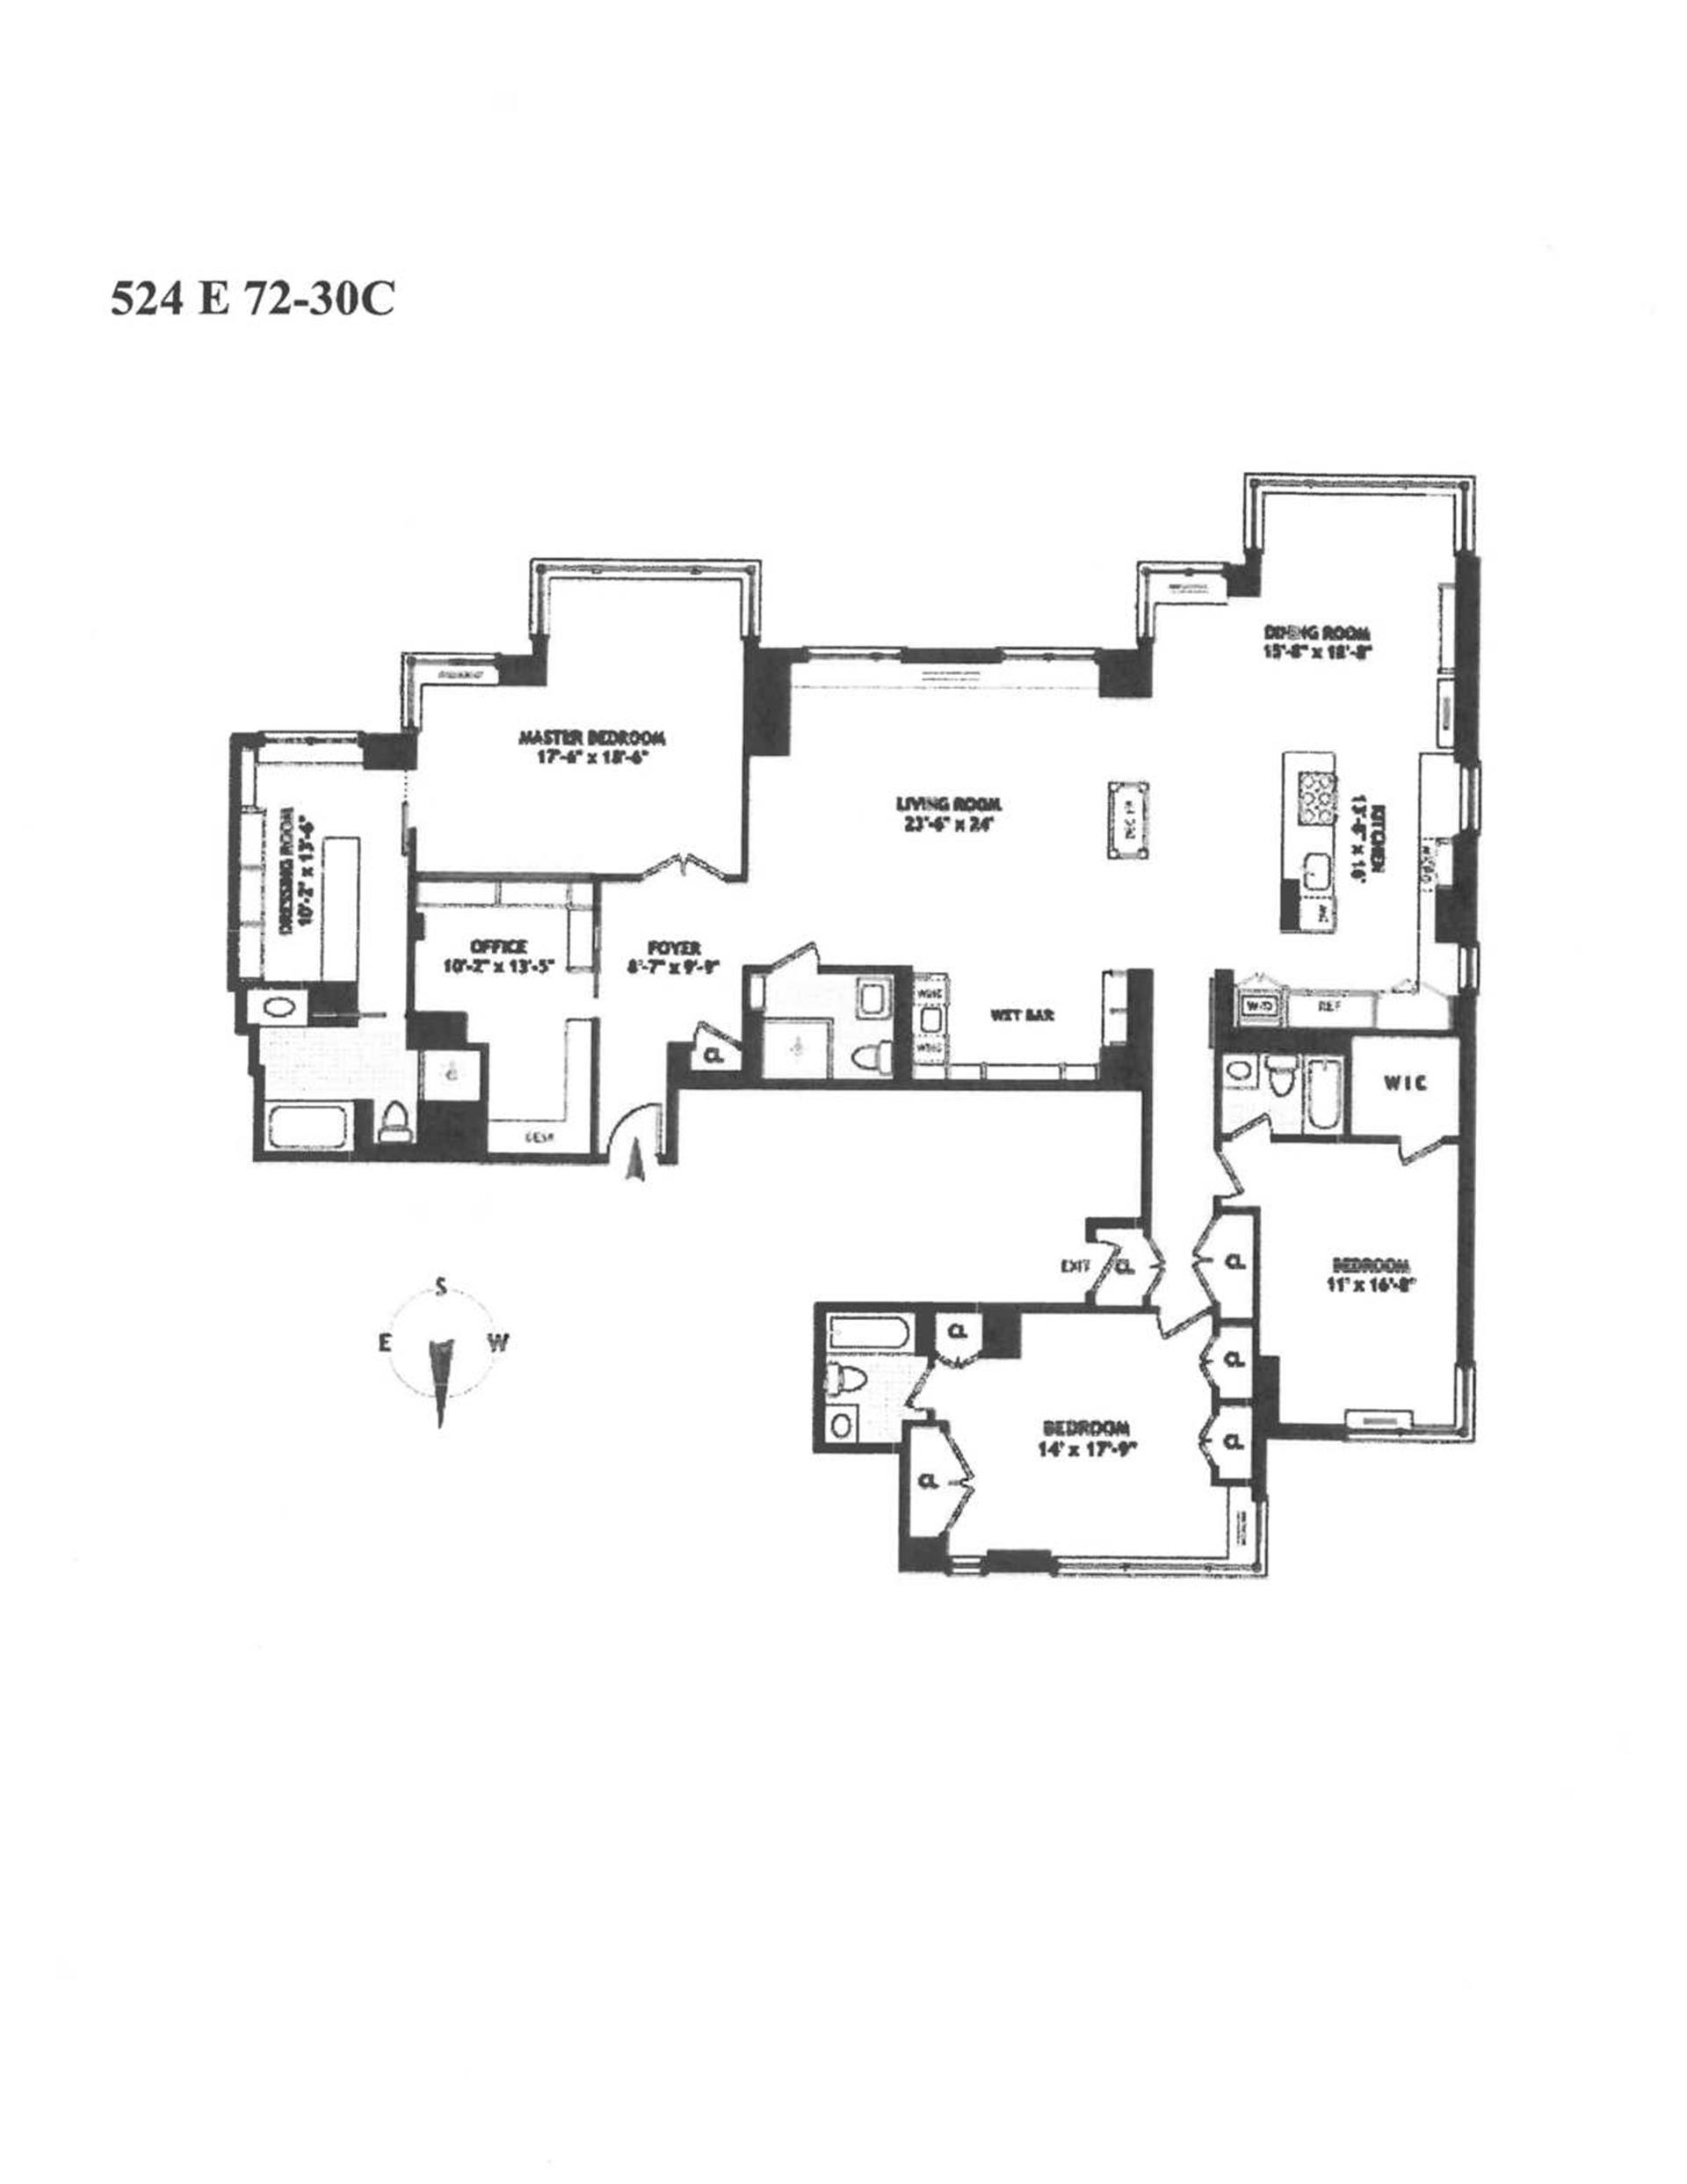 Floor plan of THE BELAIRE, 524 East 72nd St, 30D - Upper East Side, New York